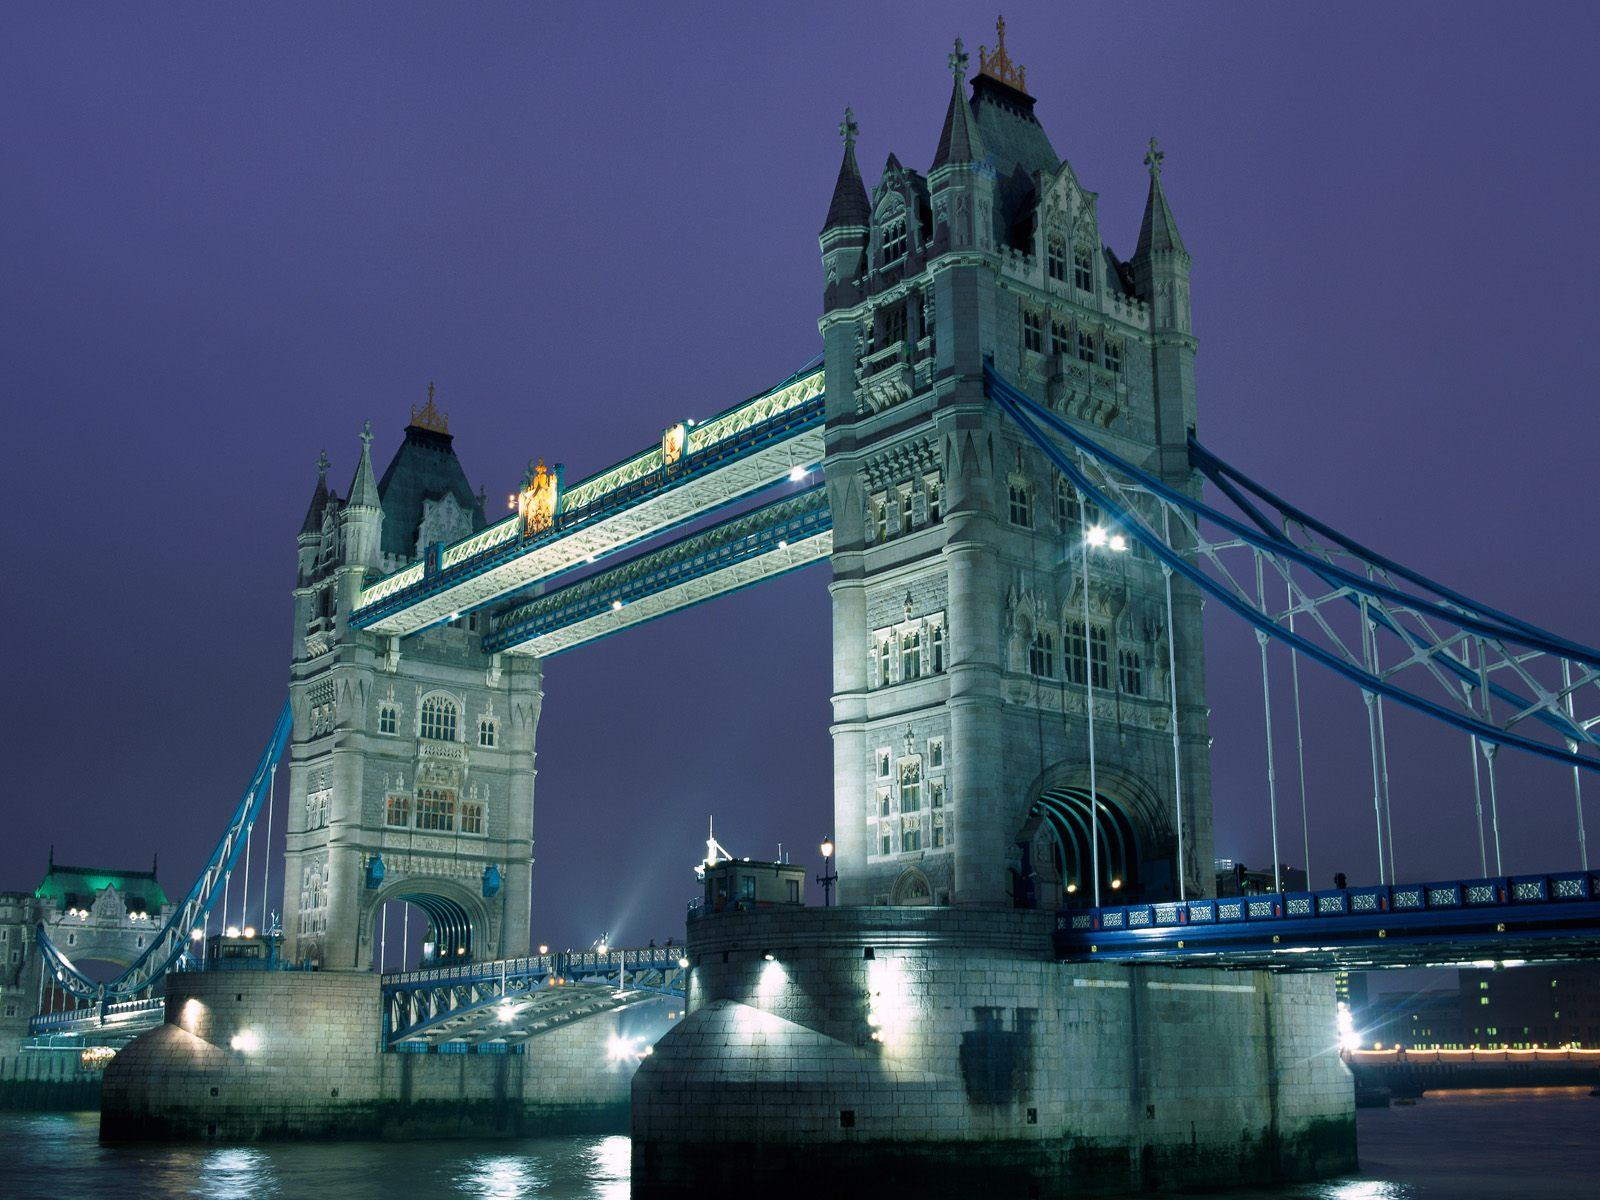 http://2.bp.blogspot.com/-ollUoij2rss/TpvWM-r7c1I/AAAAAAAABMU/KeS17Ked_c0/s1600/Awesome+Tower+Bridge+in+London+wallpapers.jpg